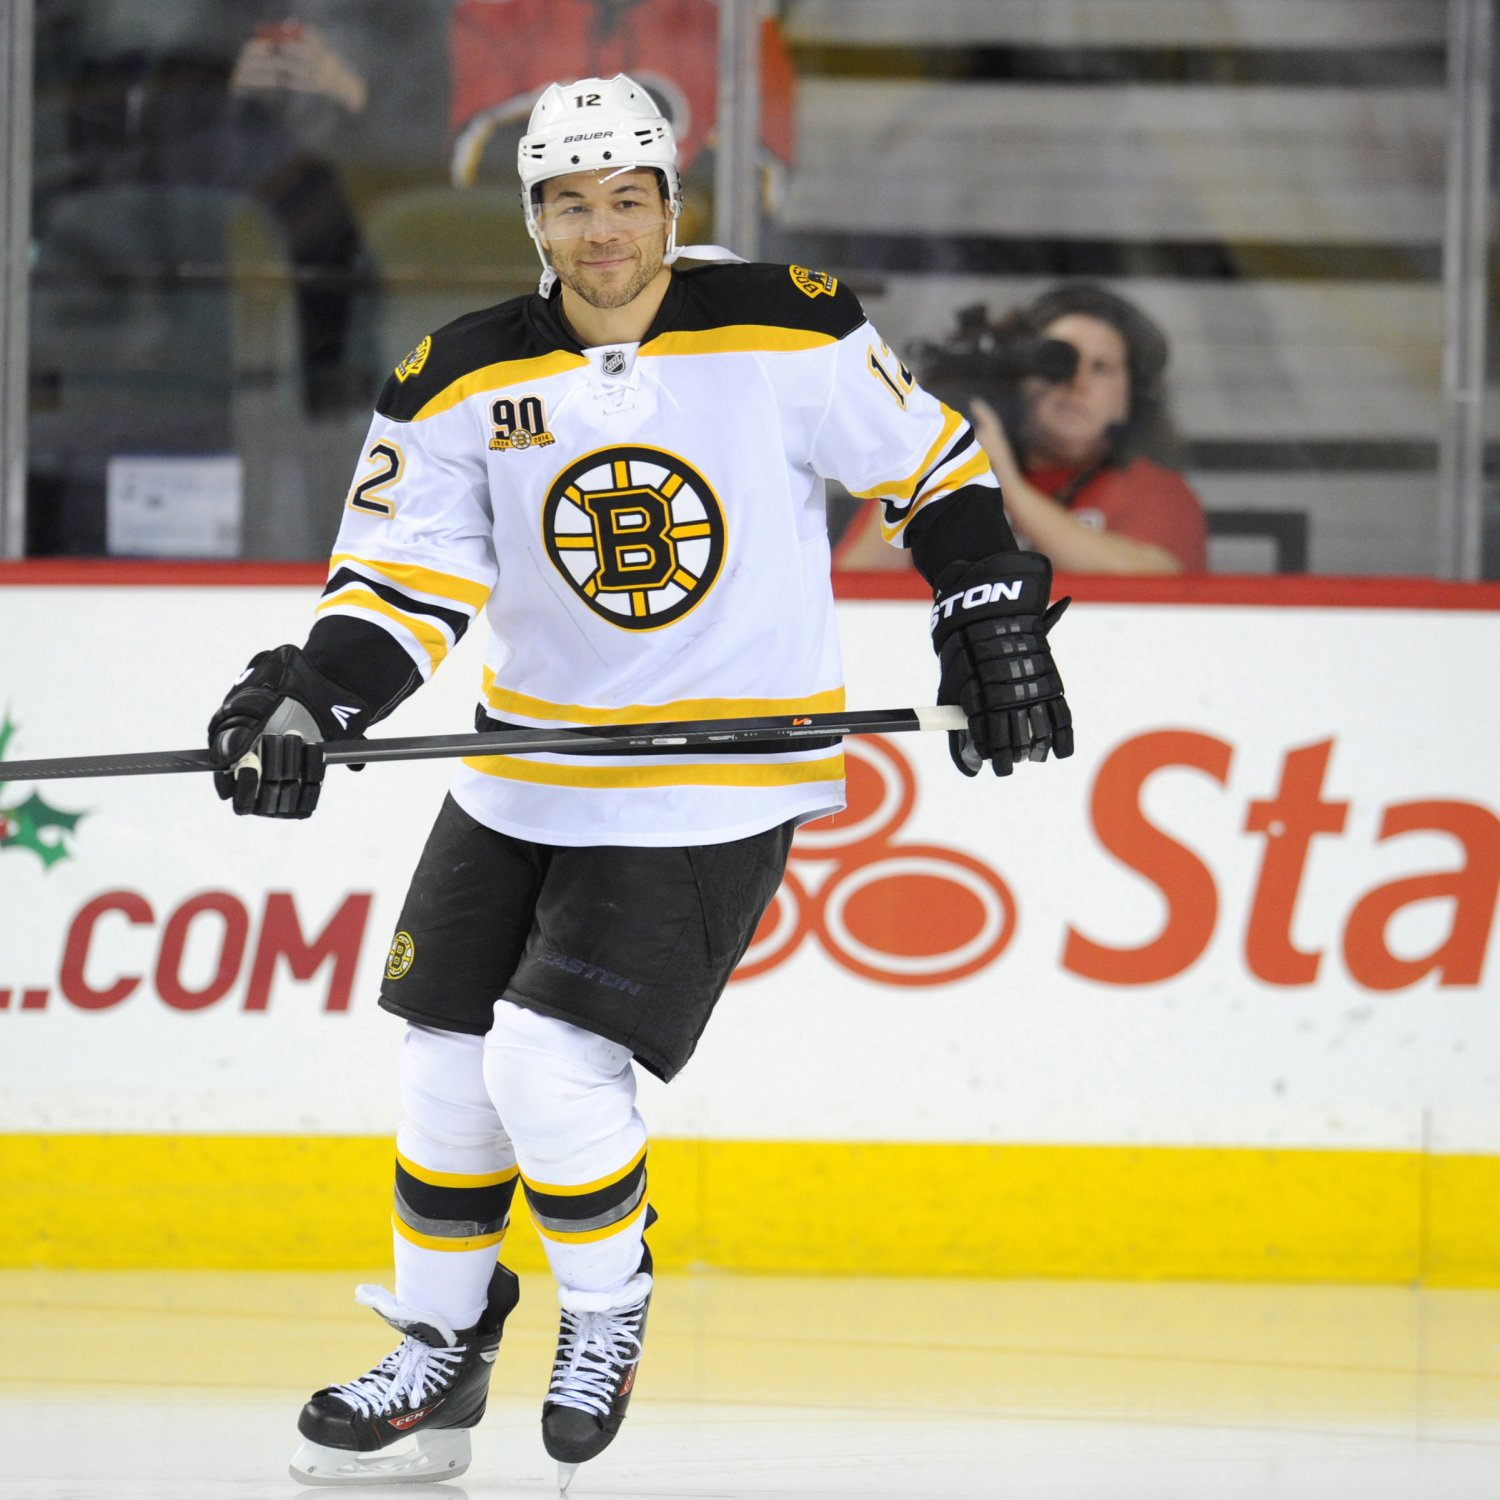 Jarome Iginla Injury: Updates On Bruins Star's Hand And